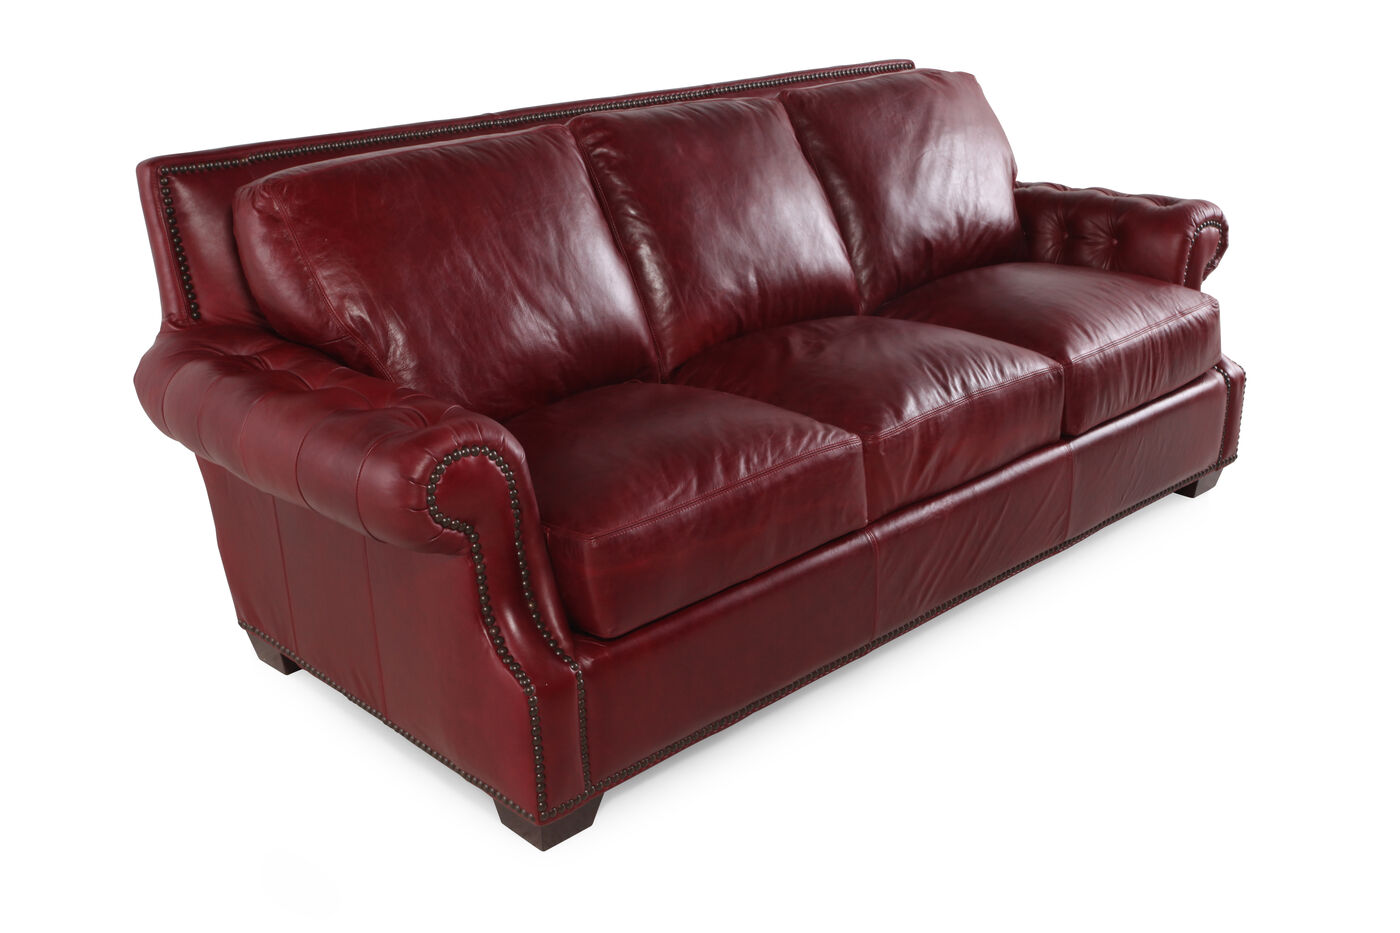 Traditional Leather 93 Quot Sofa In Marsala Red Mathis